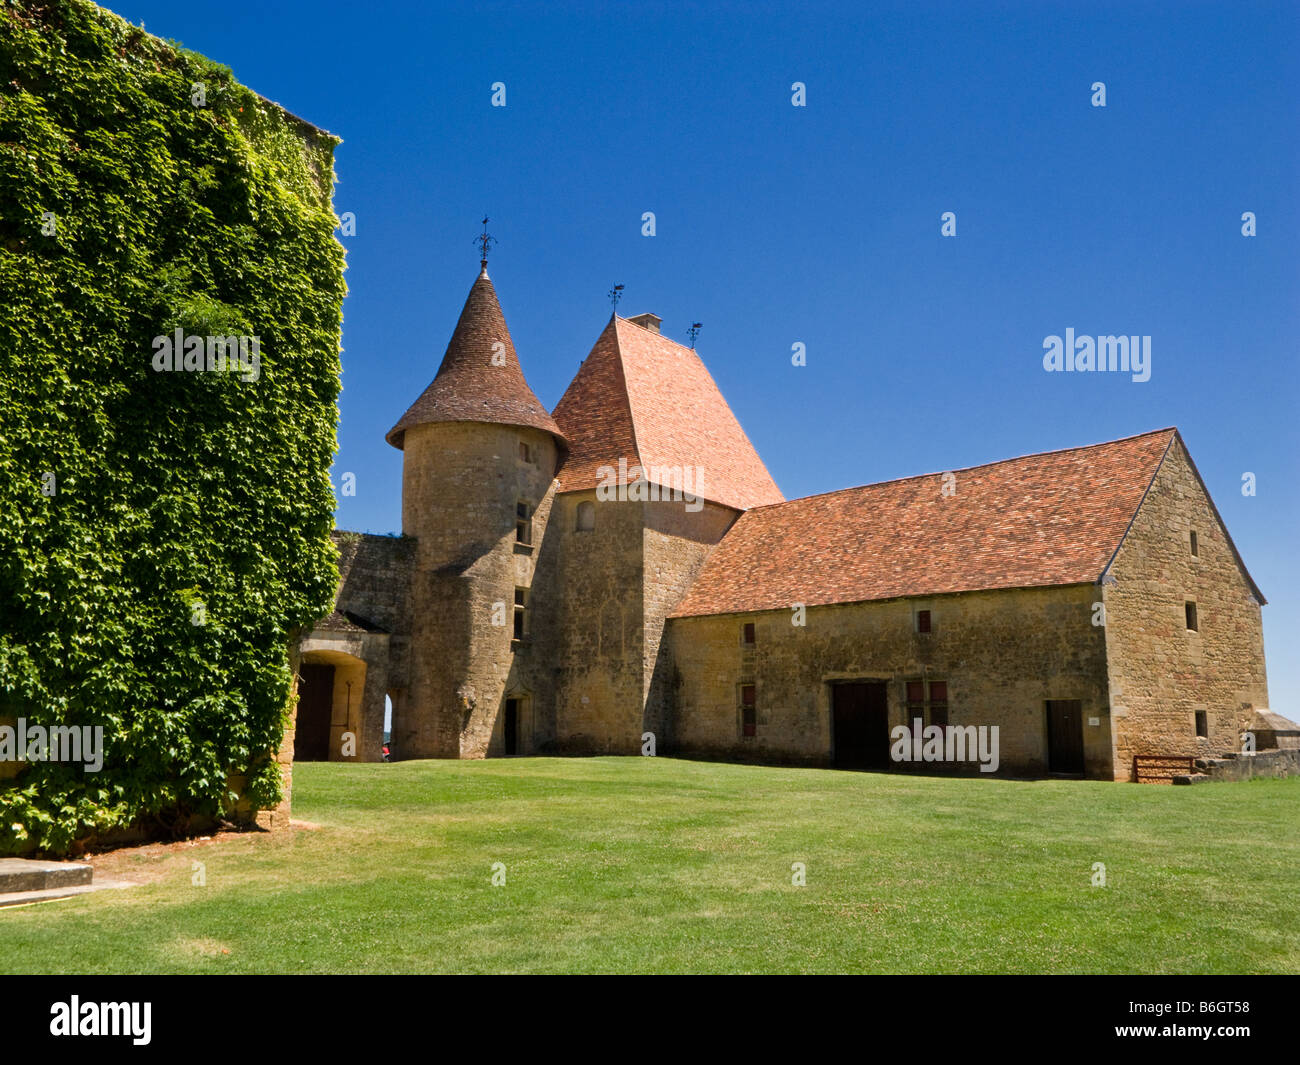 Old buildings in the courtyard of the Chateau de Biron Dordogne France Europe - Stock Image